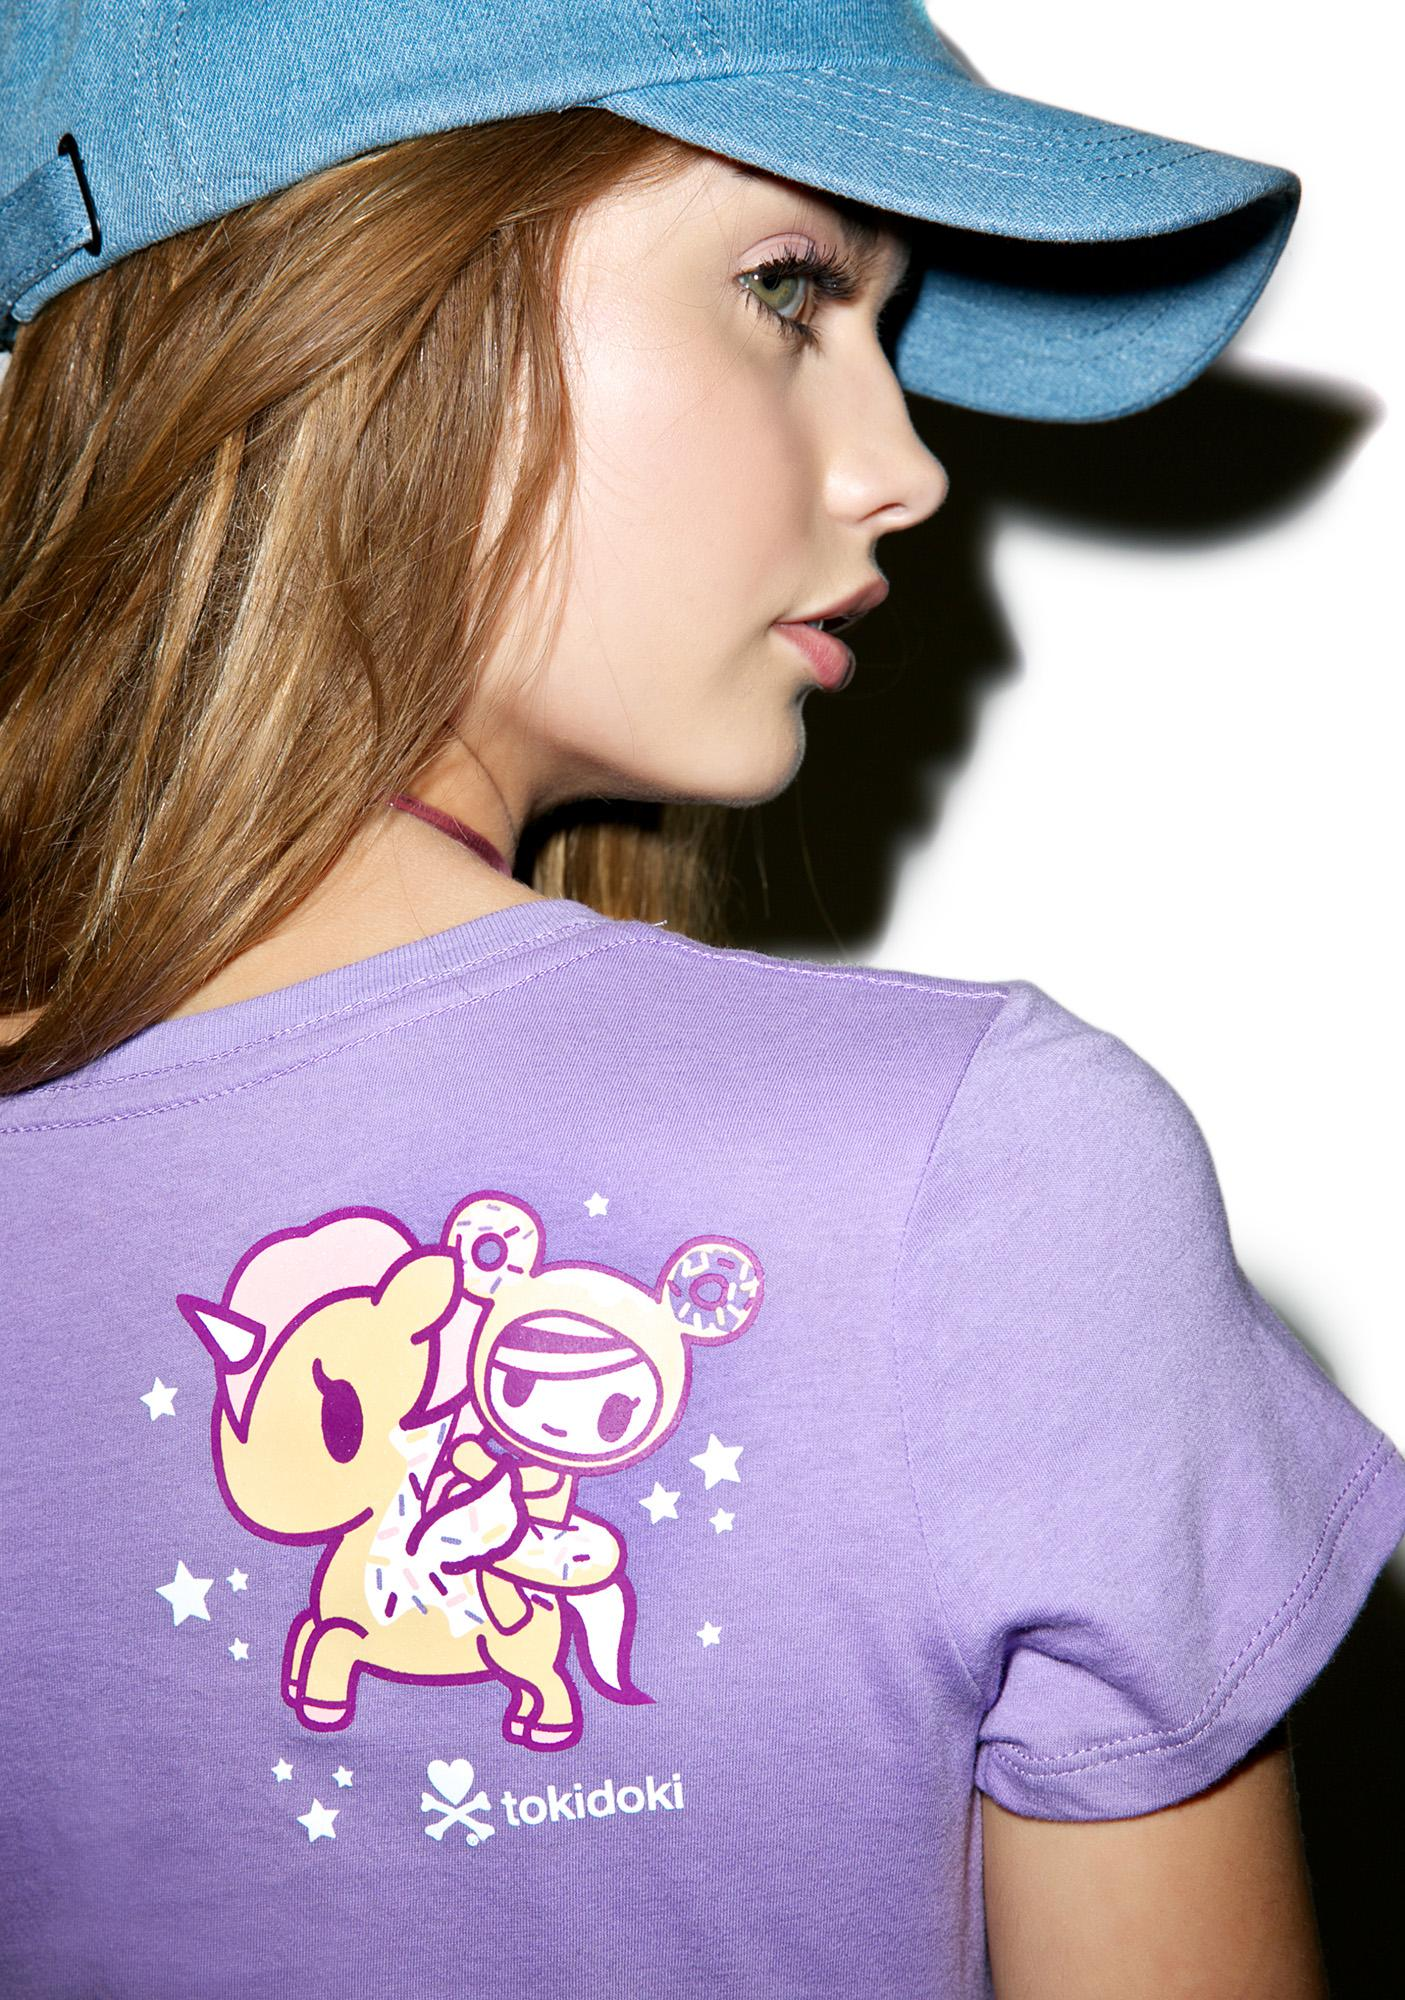 Tokidoki Always Twirling Tee